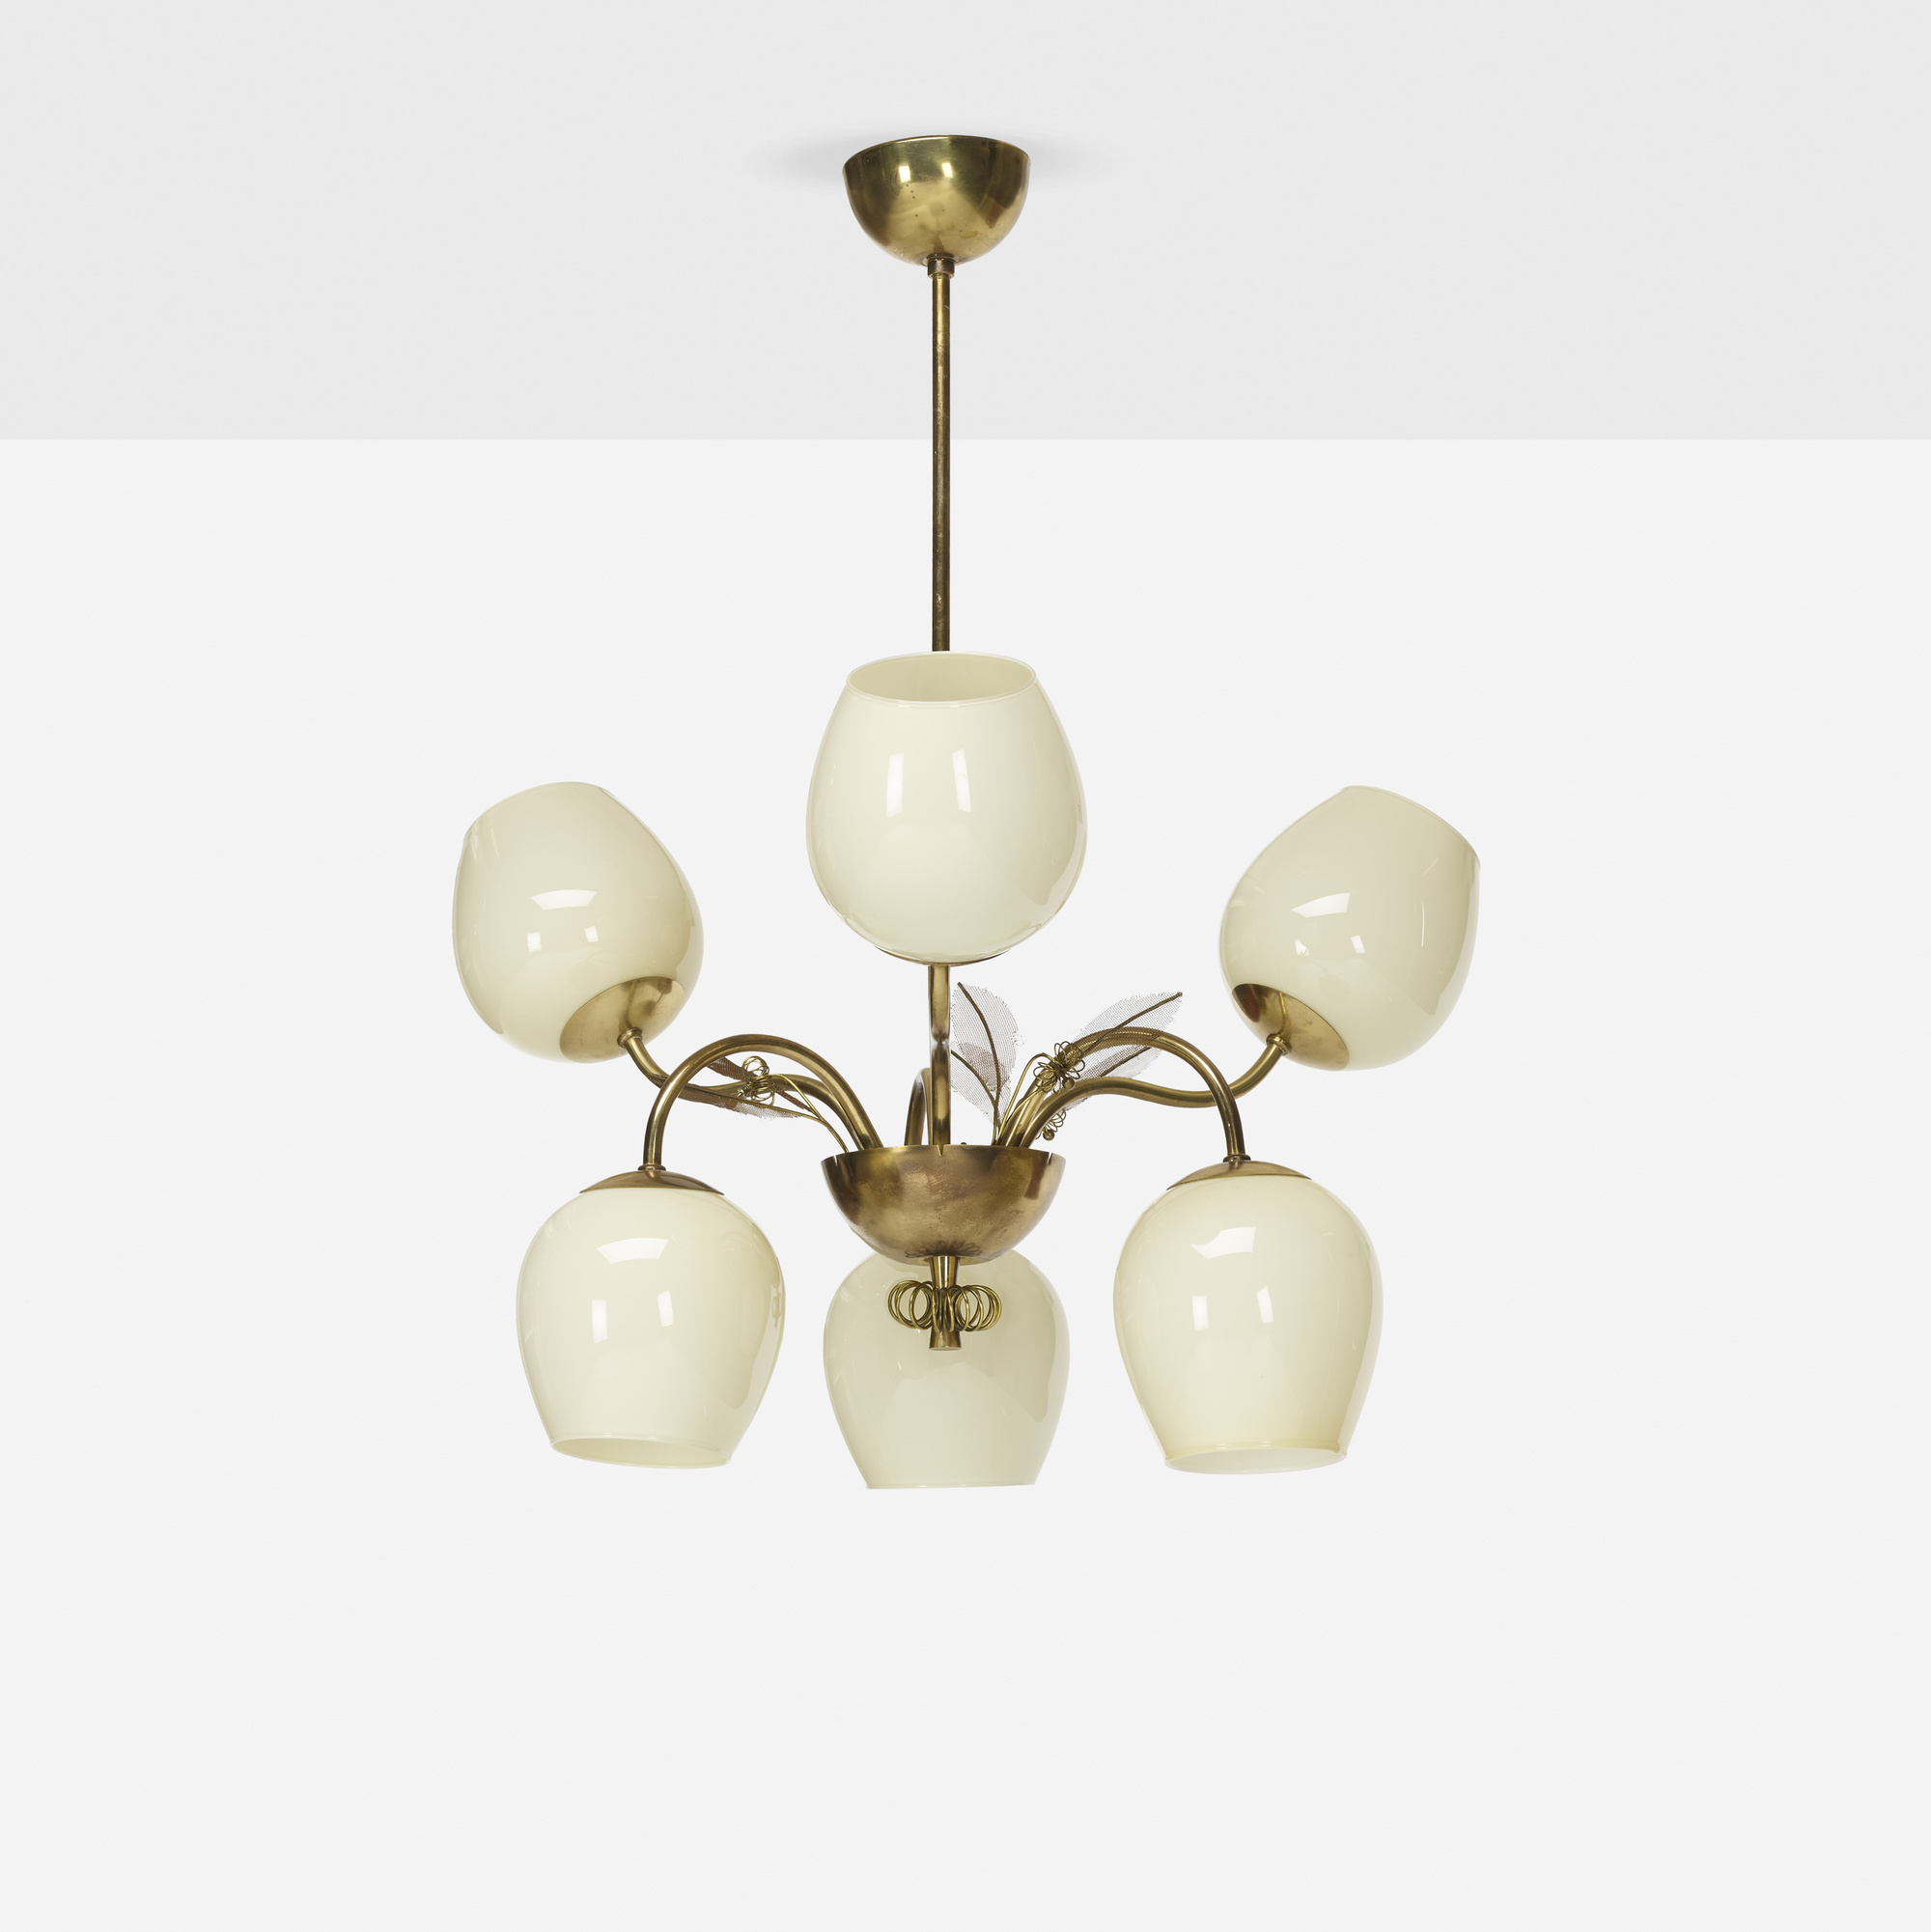 243: Paavo Tynell / chandelier (1 of 2)